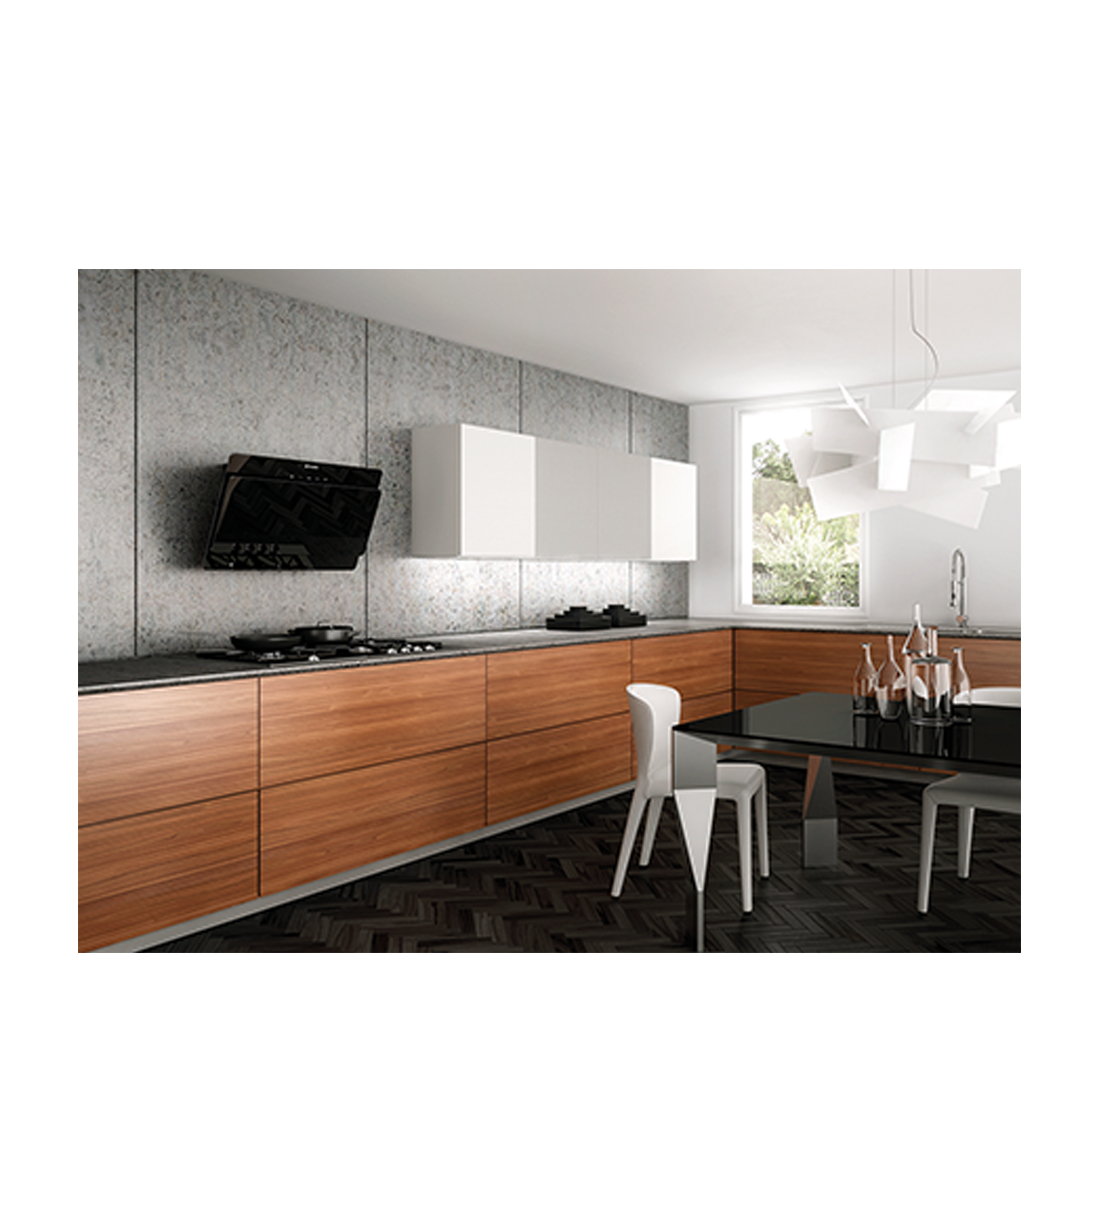 Faber Rangehood 36inch in Black color showcased by Corbeil Electro Store